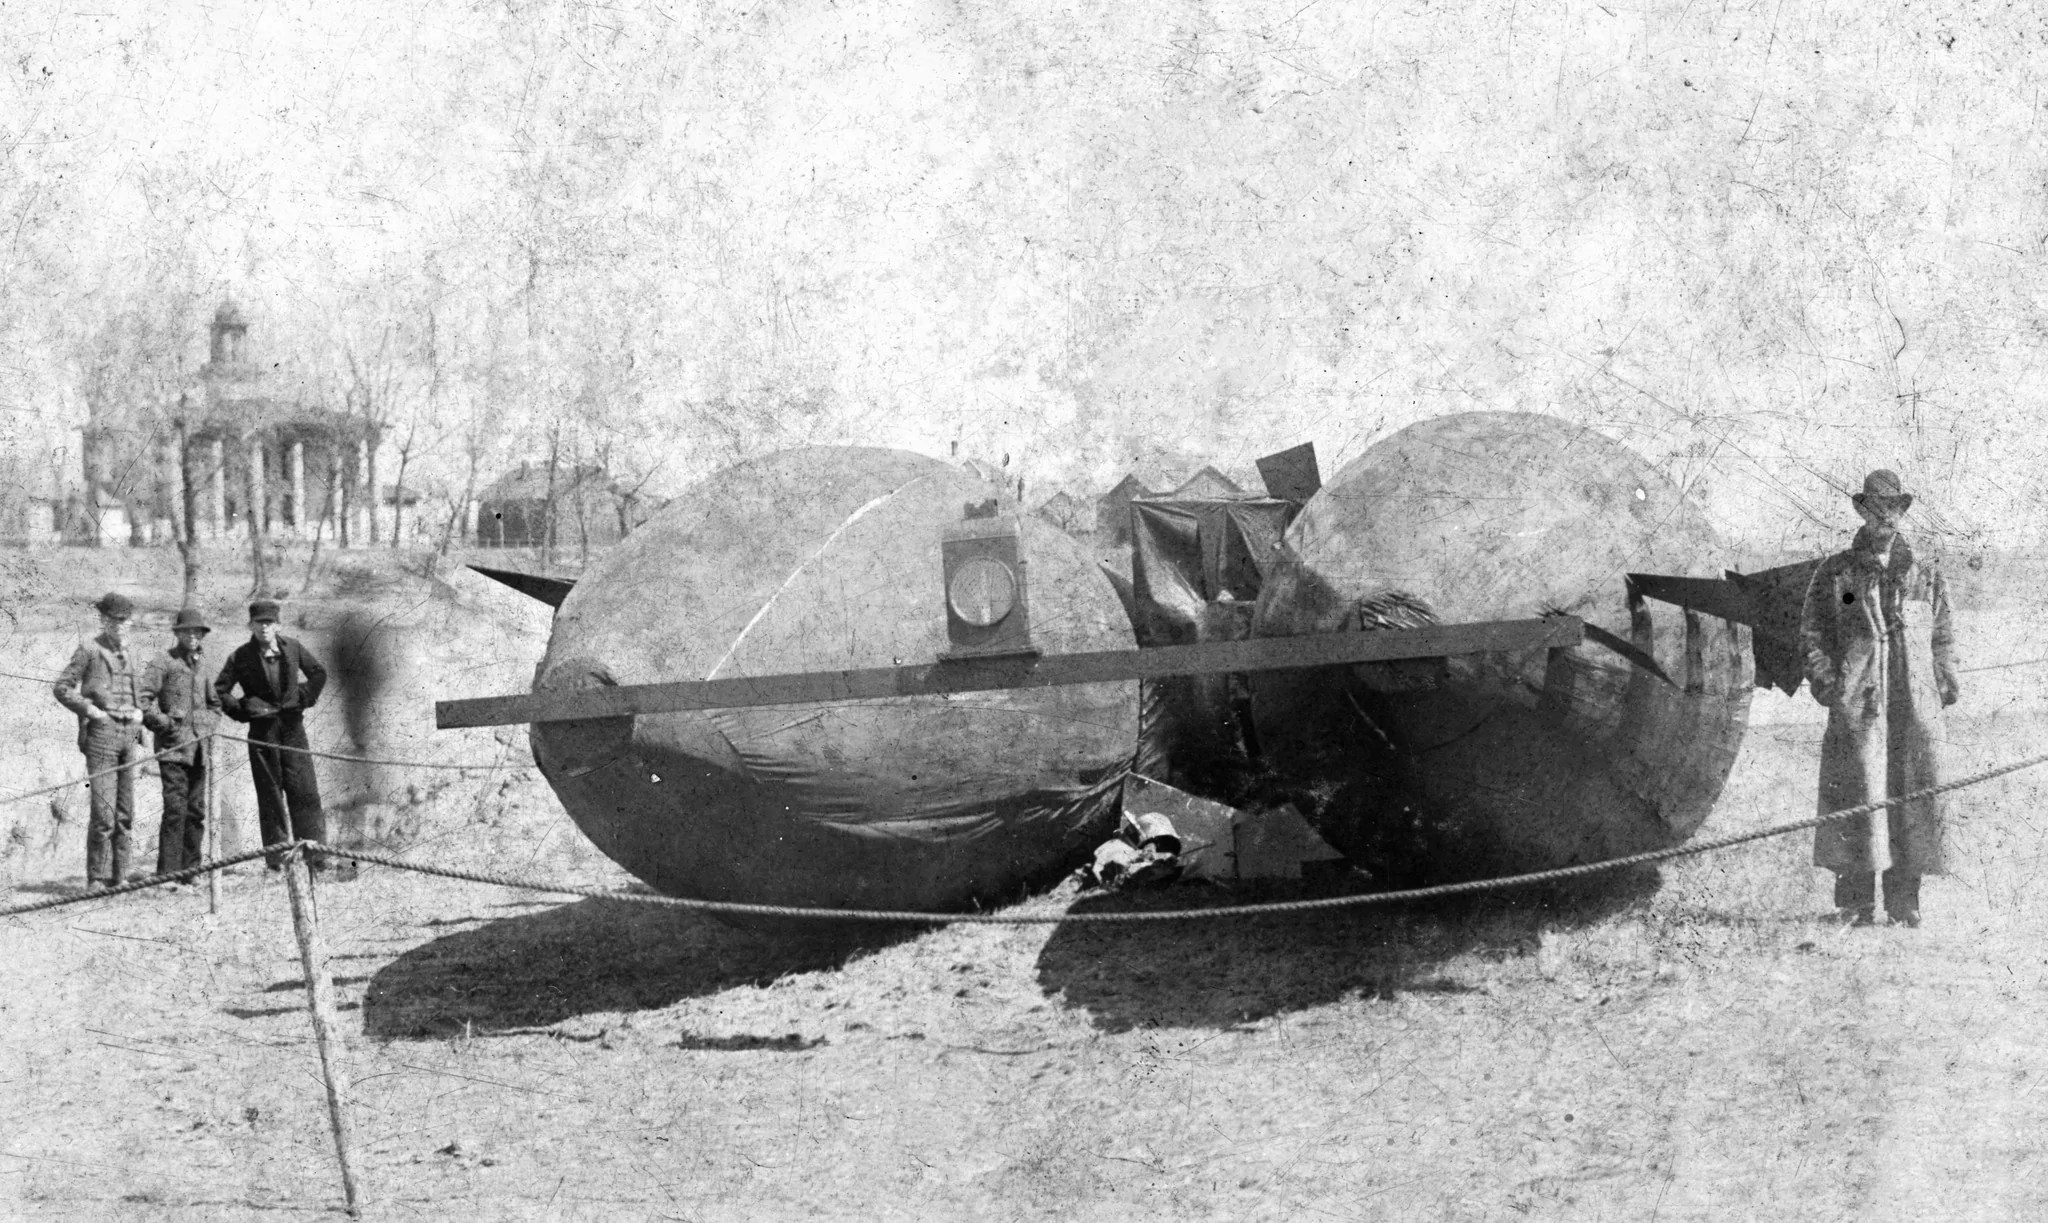 April 16 1897 Quot Mystery Airship Quot Lands In Waterloo Pediment